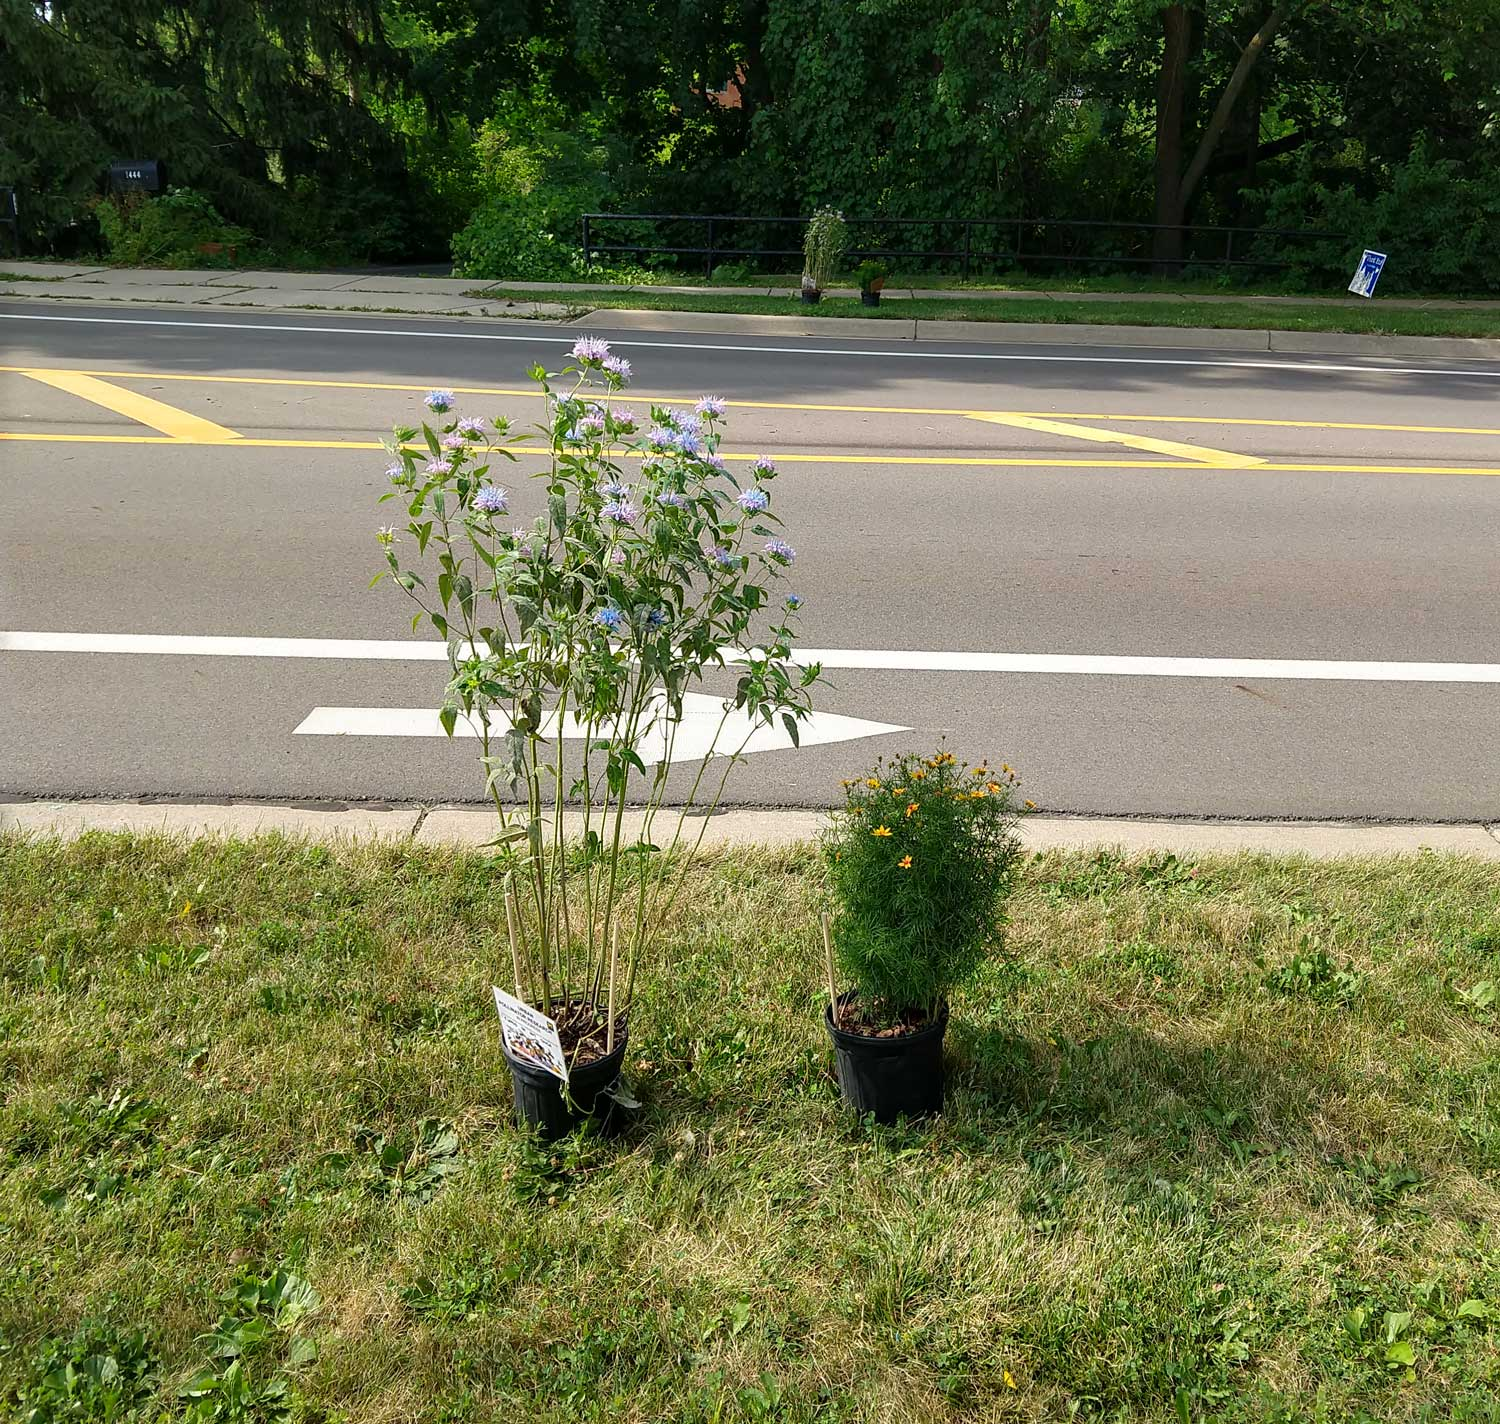 Two plants next to each other near a road